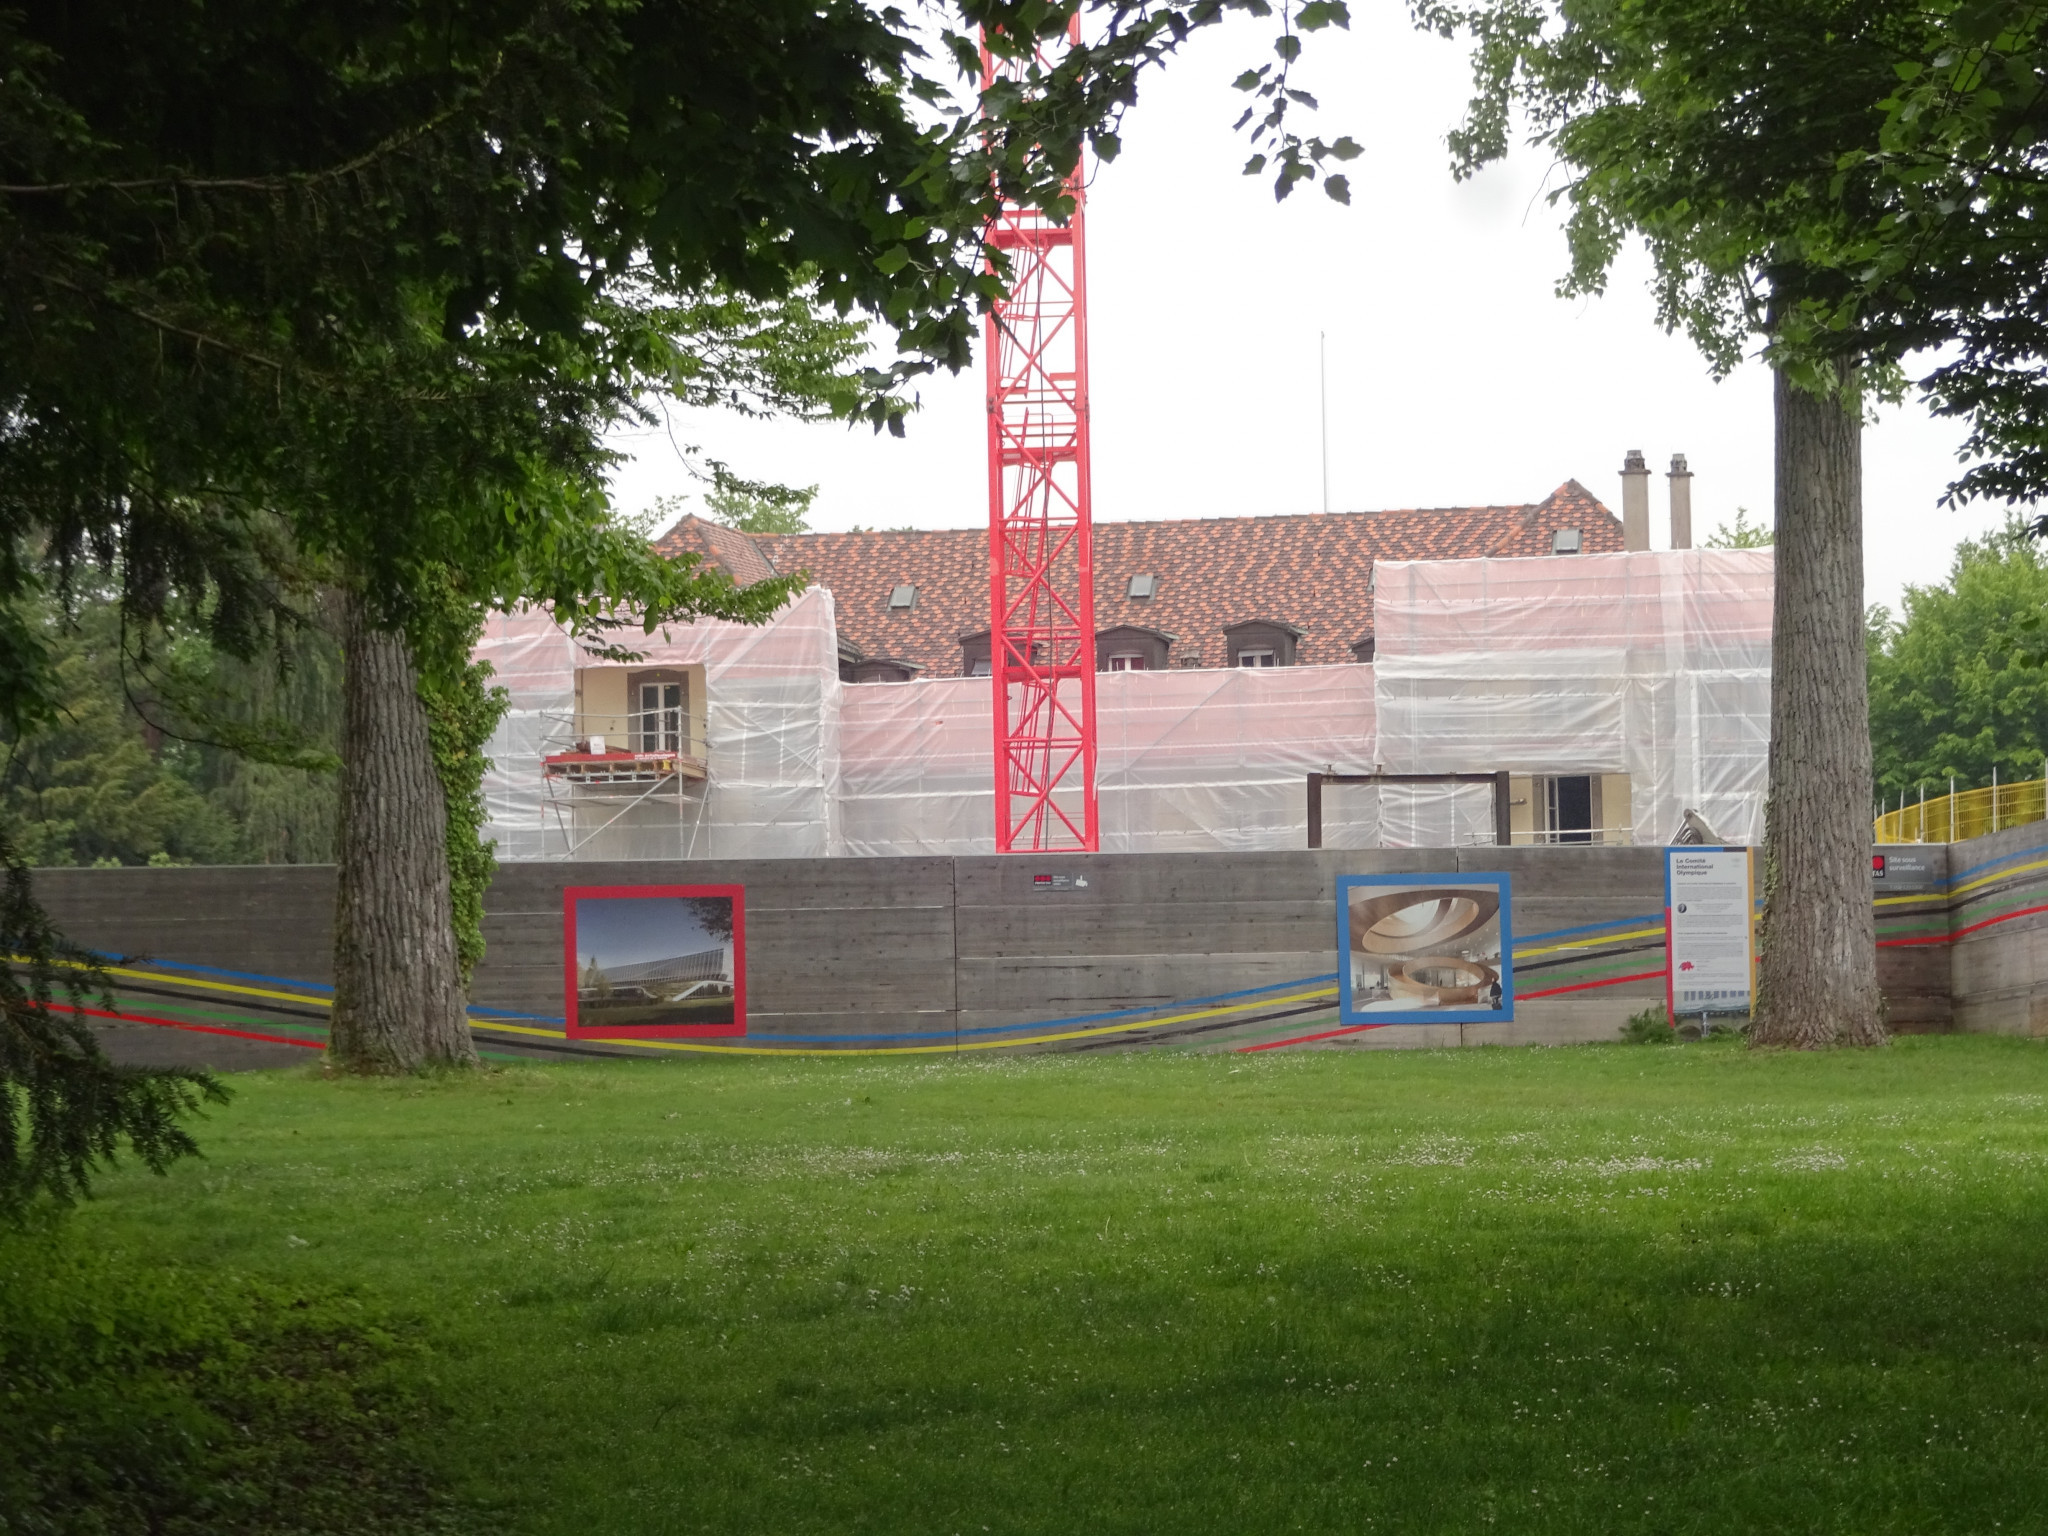 Chateau de Vidy swathed in protective sheeting during construction of the new IOC home ©ITG